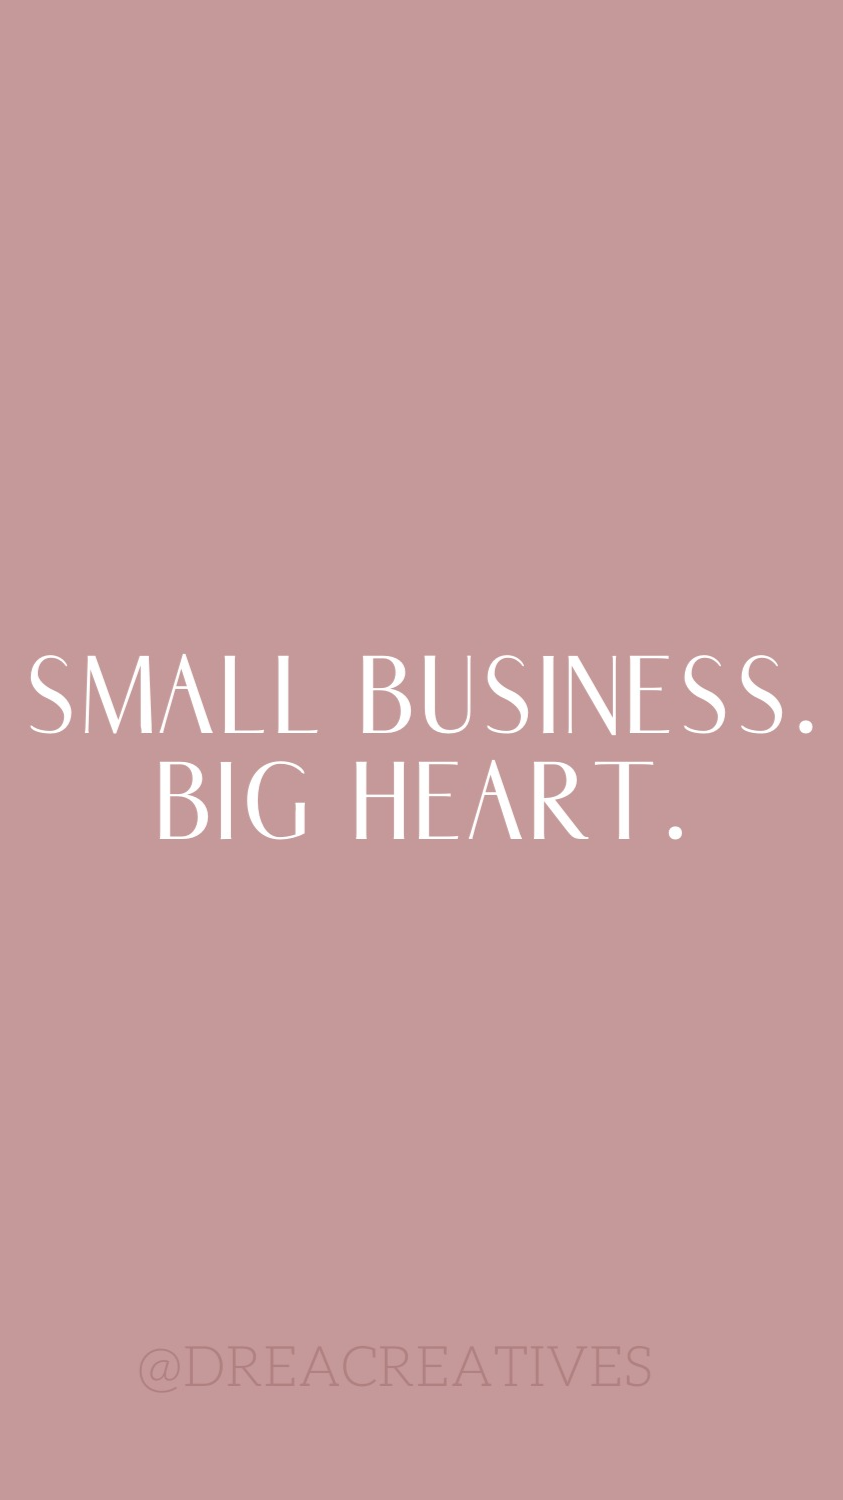 Small Business Quotes. | Drea Creatives